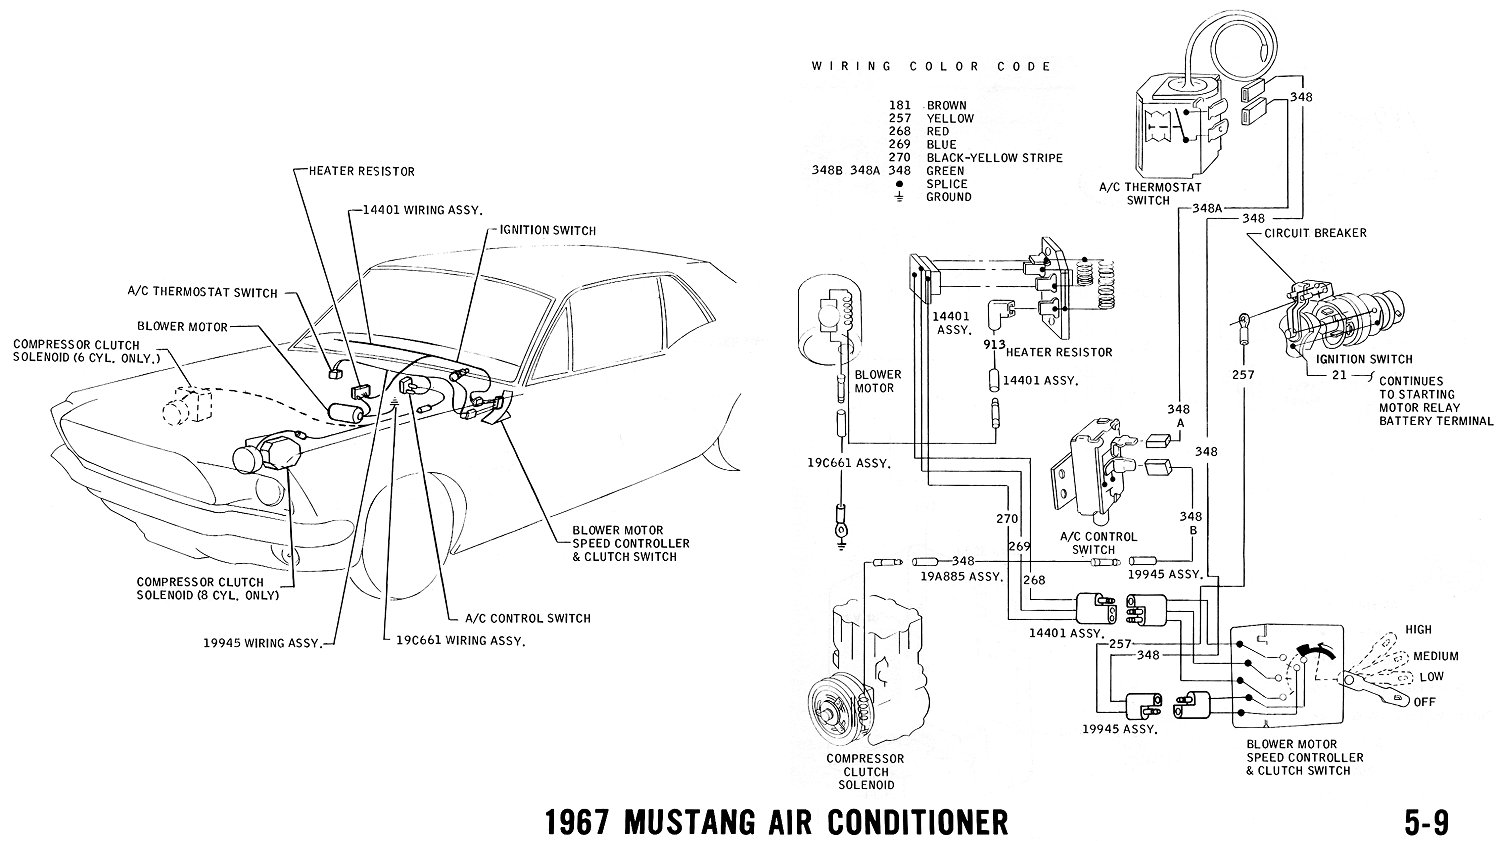 Diagram 1965 Mustang Blower Motor Wiring Diagram Full Version Hd Quality Wiring Diagram Ddiagram Gtve It